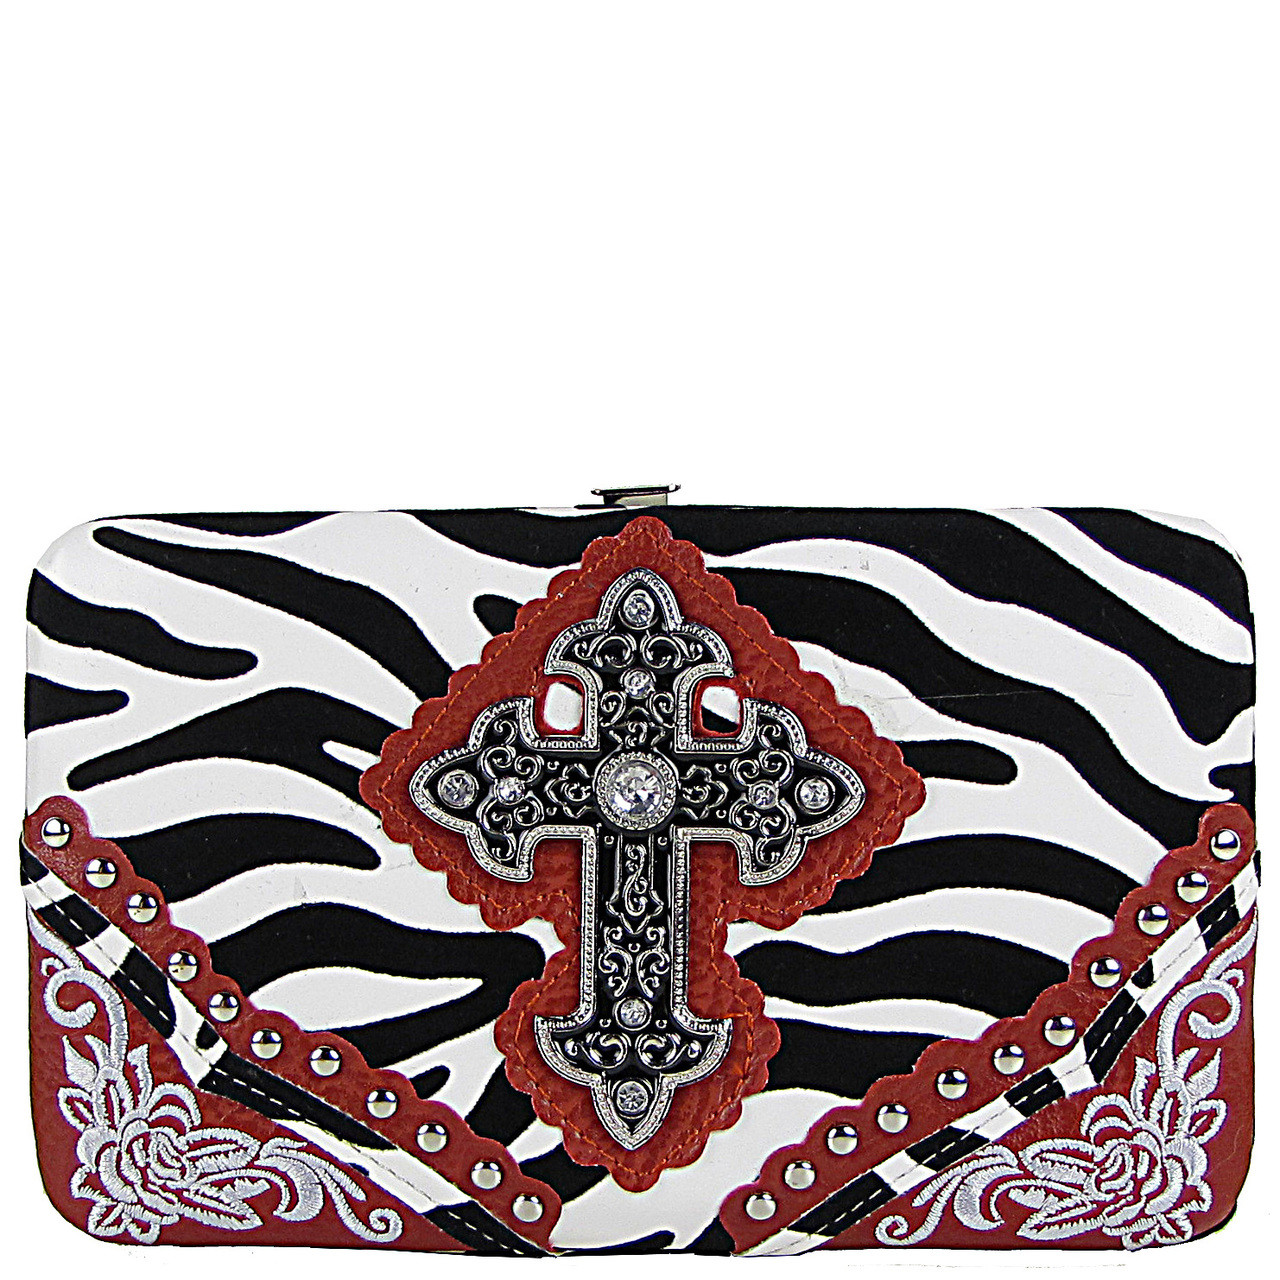 RED ZEBRA STITCHED CROSS FLAT THICK WALLET FW2-0472RED